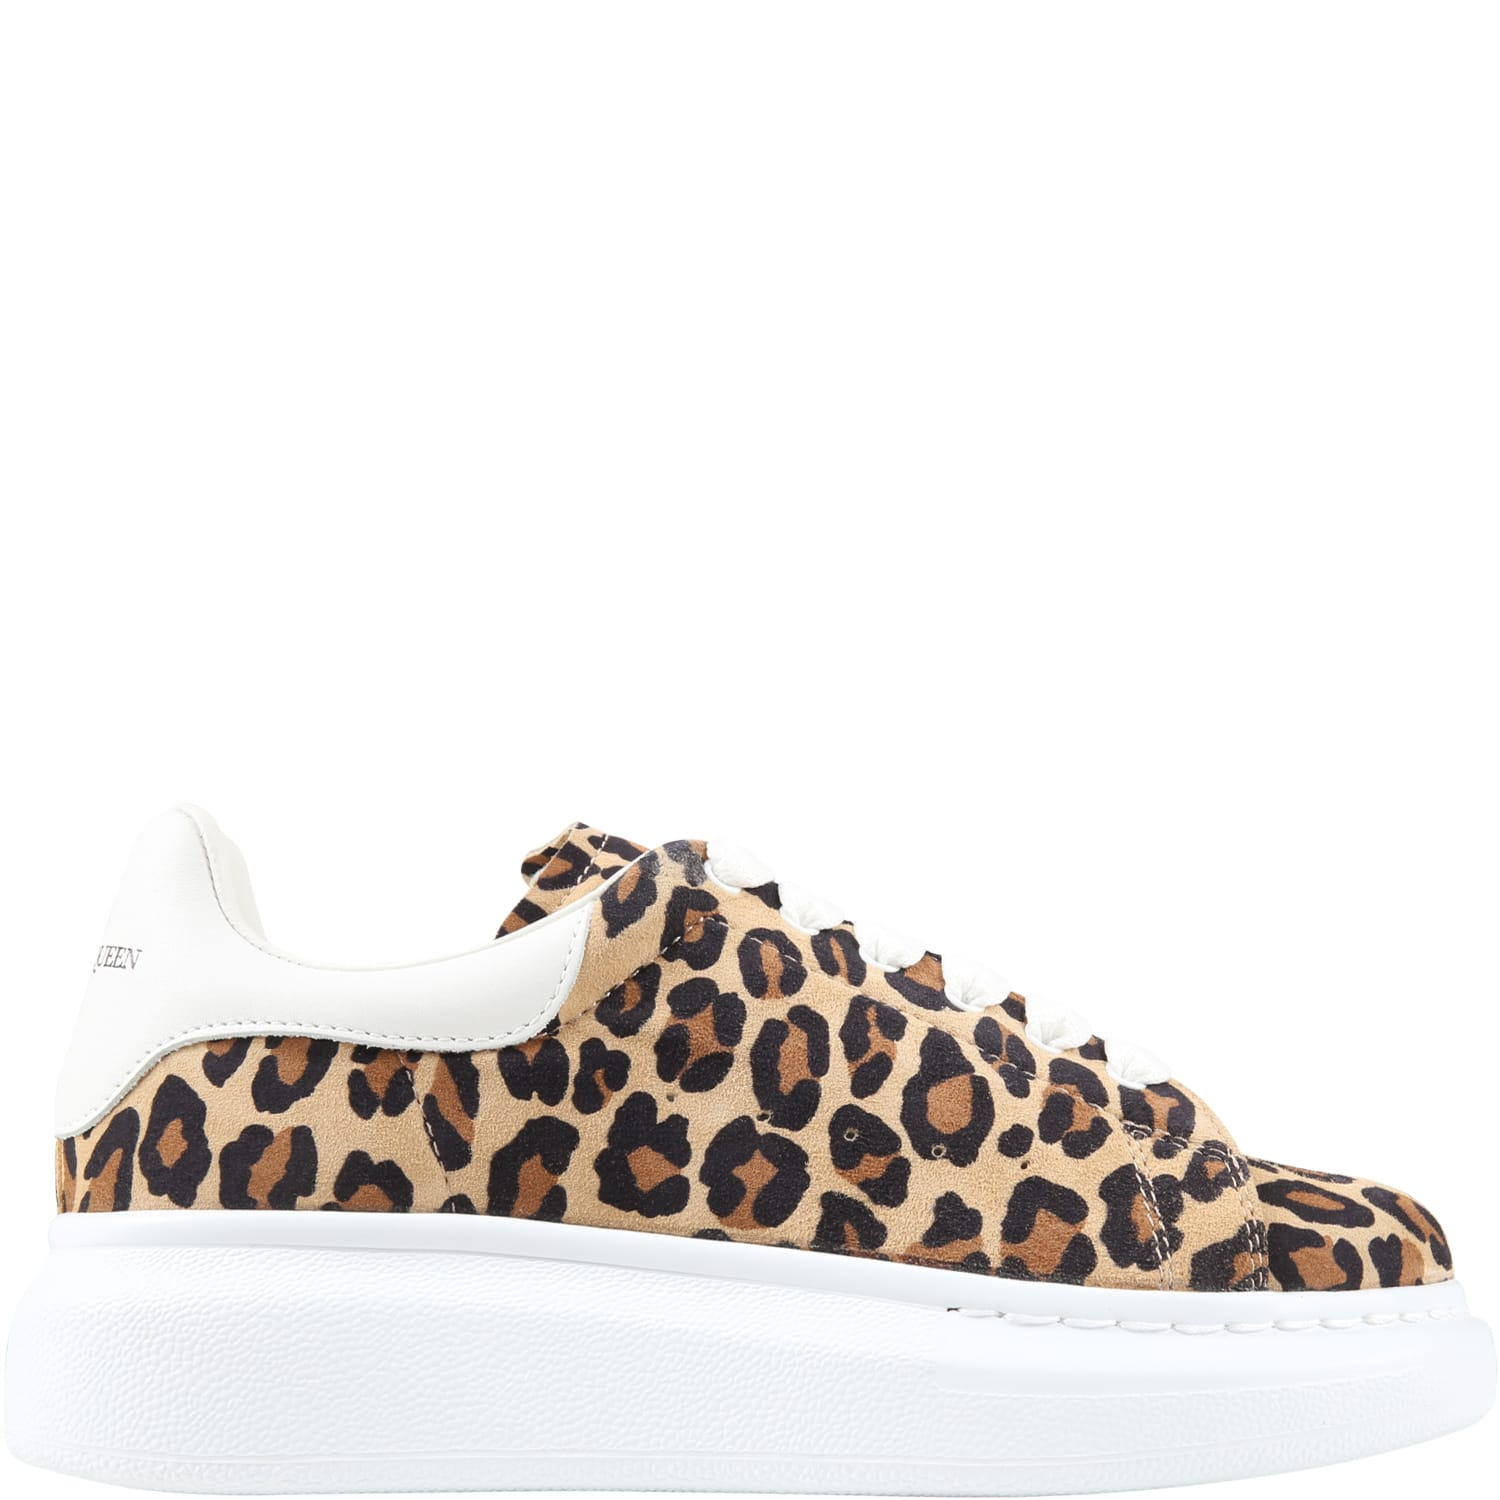 Buy Alexander McQueen Beige Sneakers For Girl With Logo online, shop Alexander McQueen shoes with free shipping